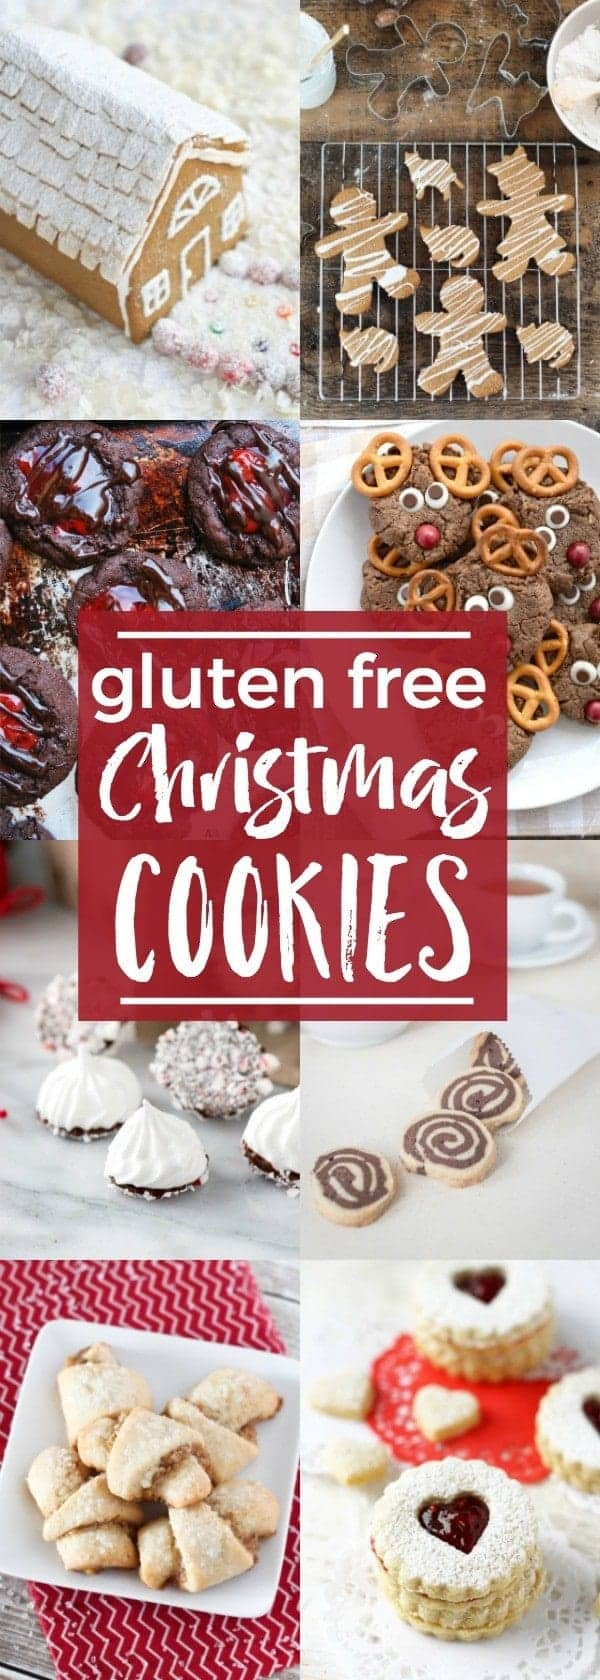 A complete list of gluten free Christmas Cookies - all the classics are here! @whattheforkblog | whattheforkfoodblog.com | holiday baking | gluten free cookies | homemade cookies | gluten free cookie recipes